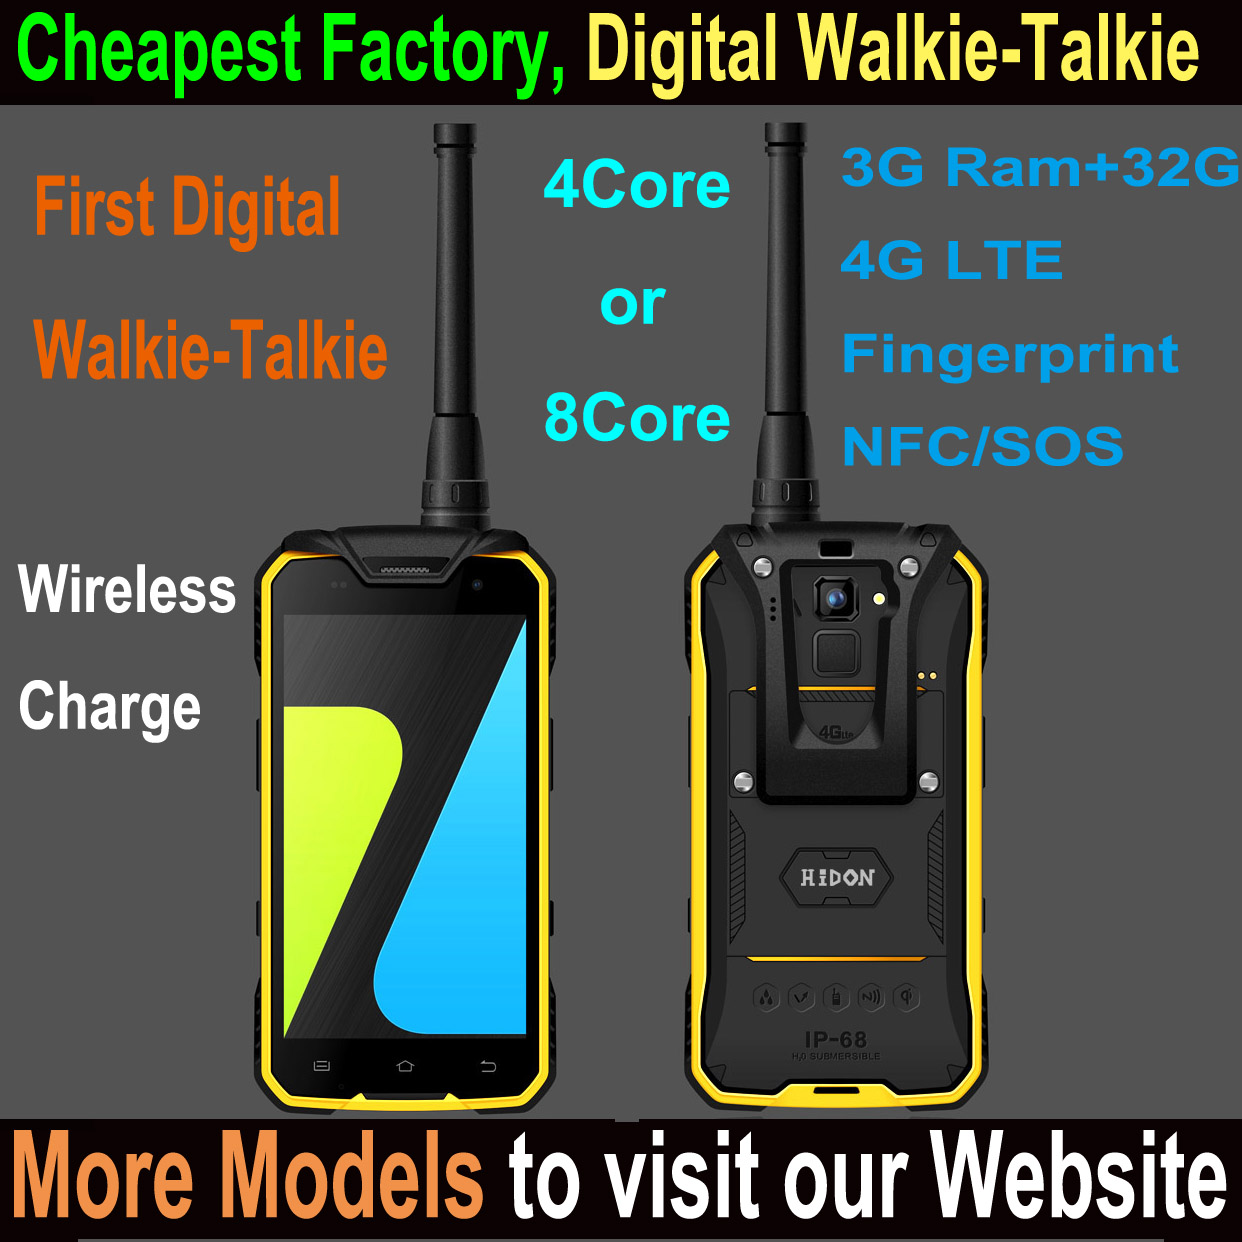 4 7 inch 4G NFC Octa Core Digital Walkie-Talkie Rugged phone or